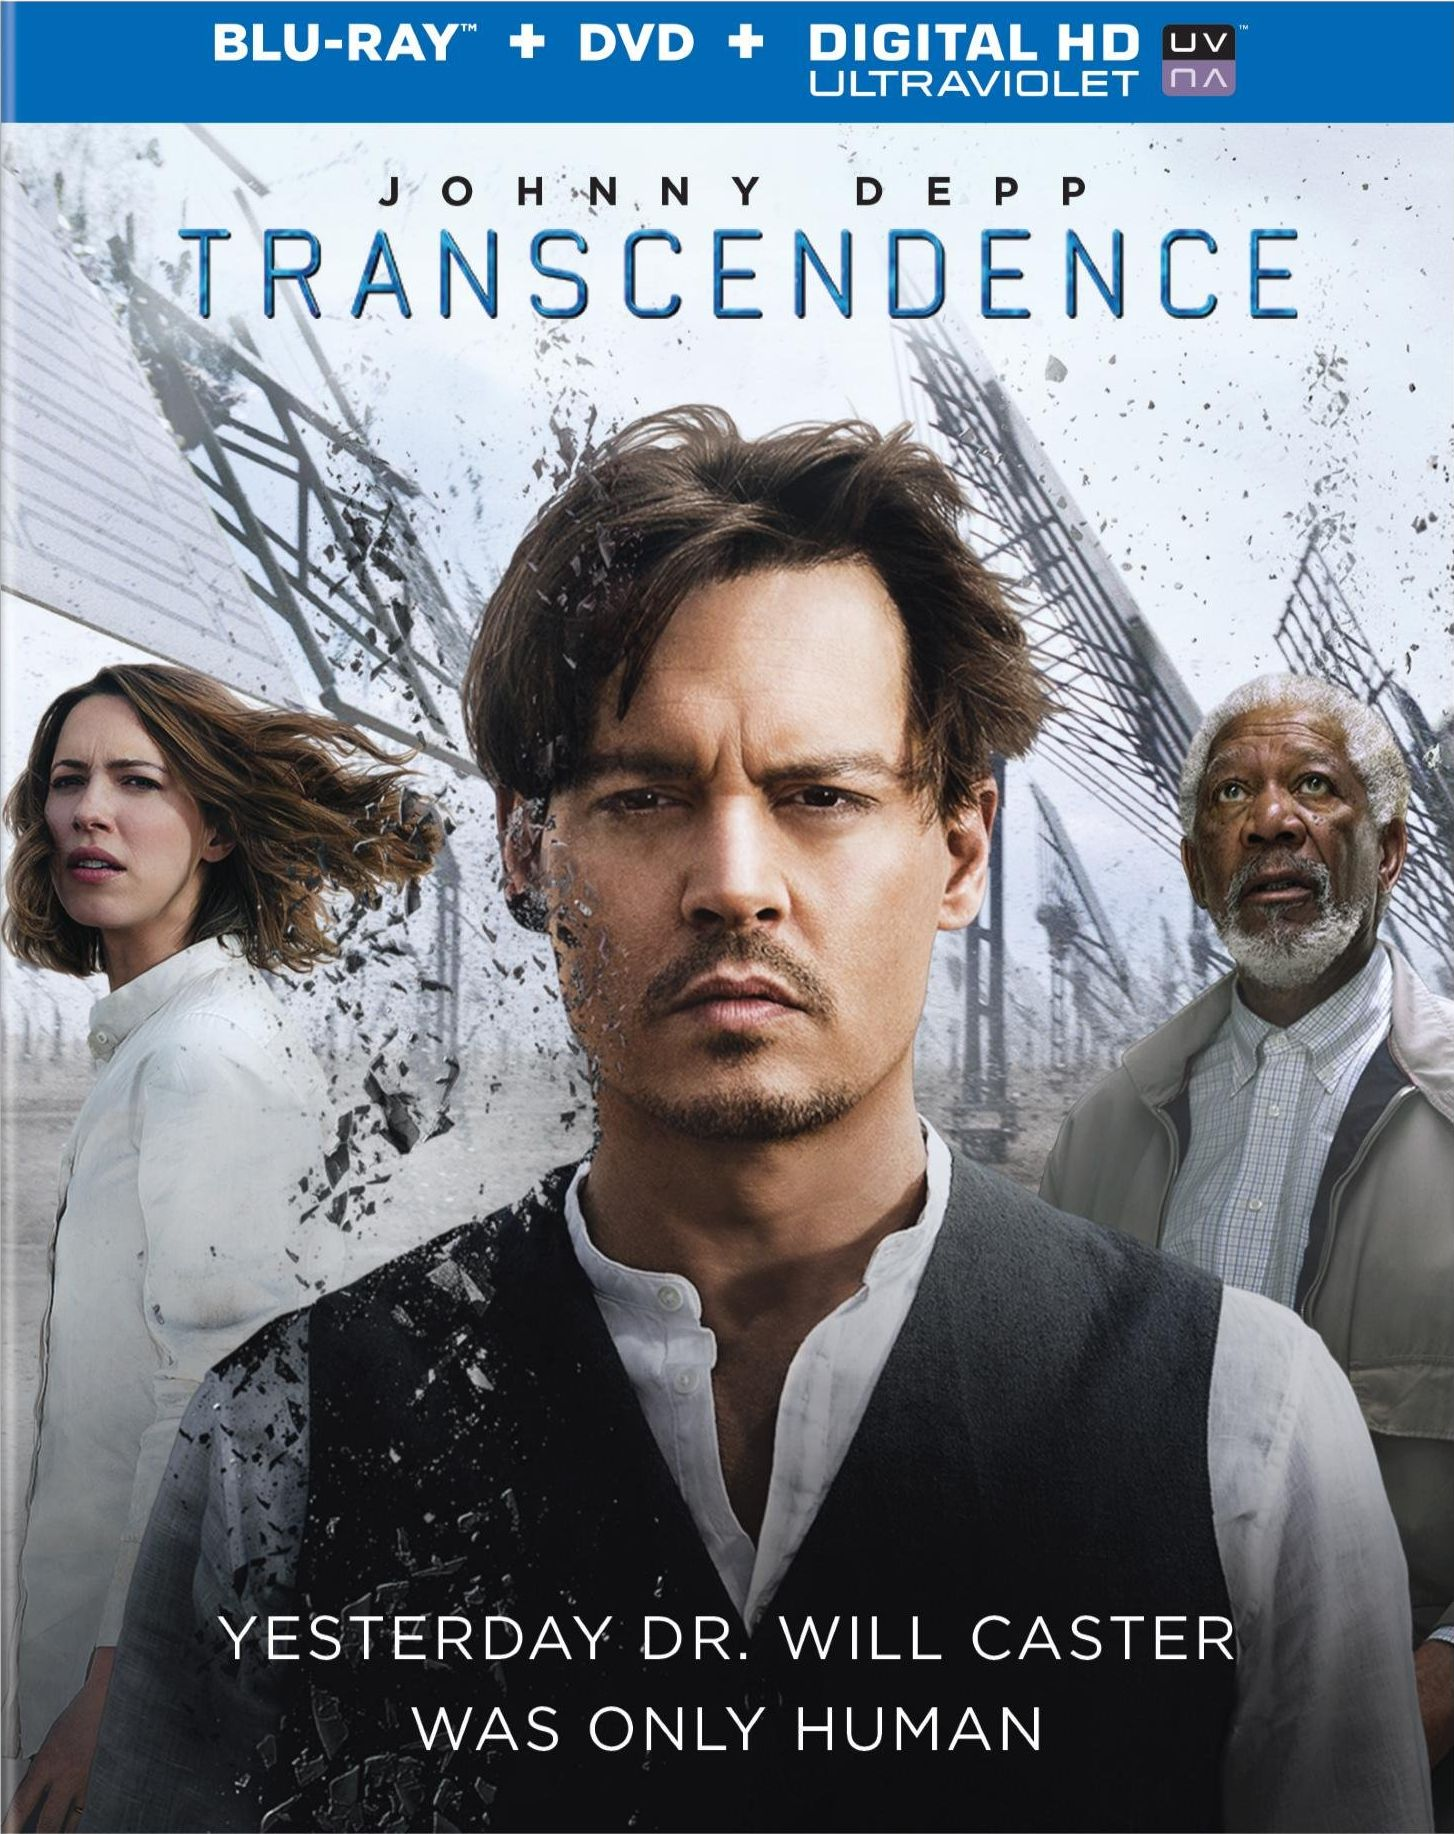 Trancendence Blu-ray Review